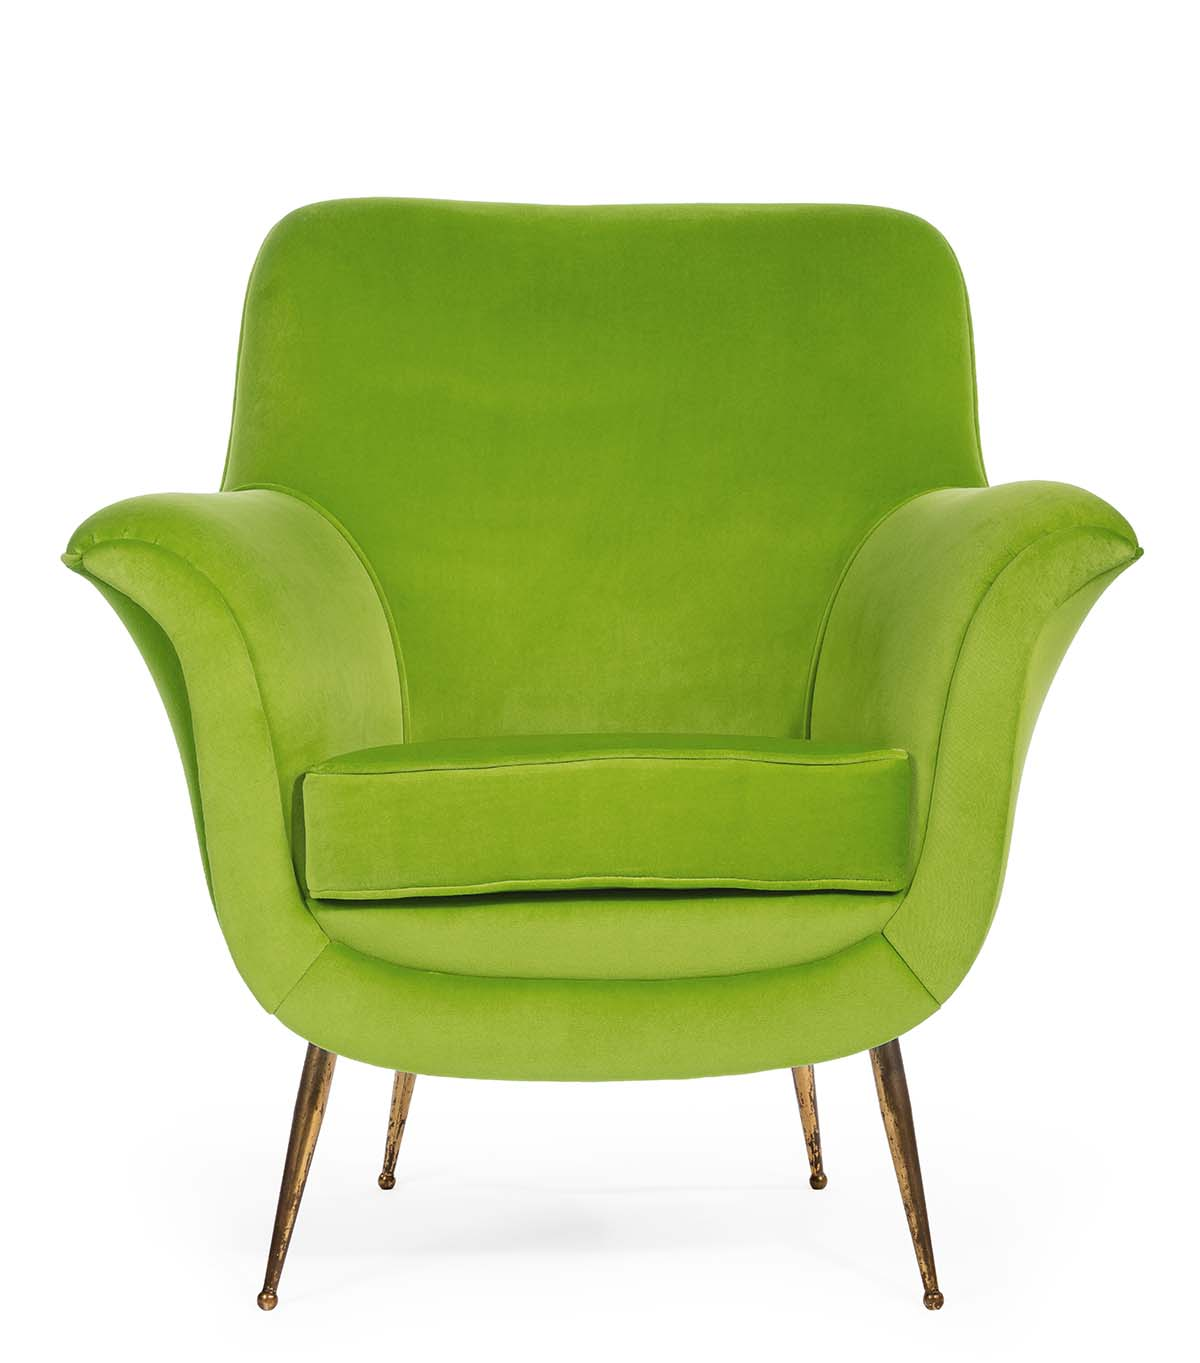 Old antique sixties retro arm chair in lime green upholstery